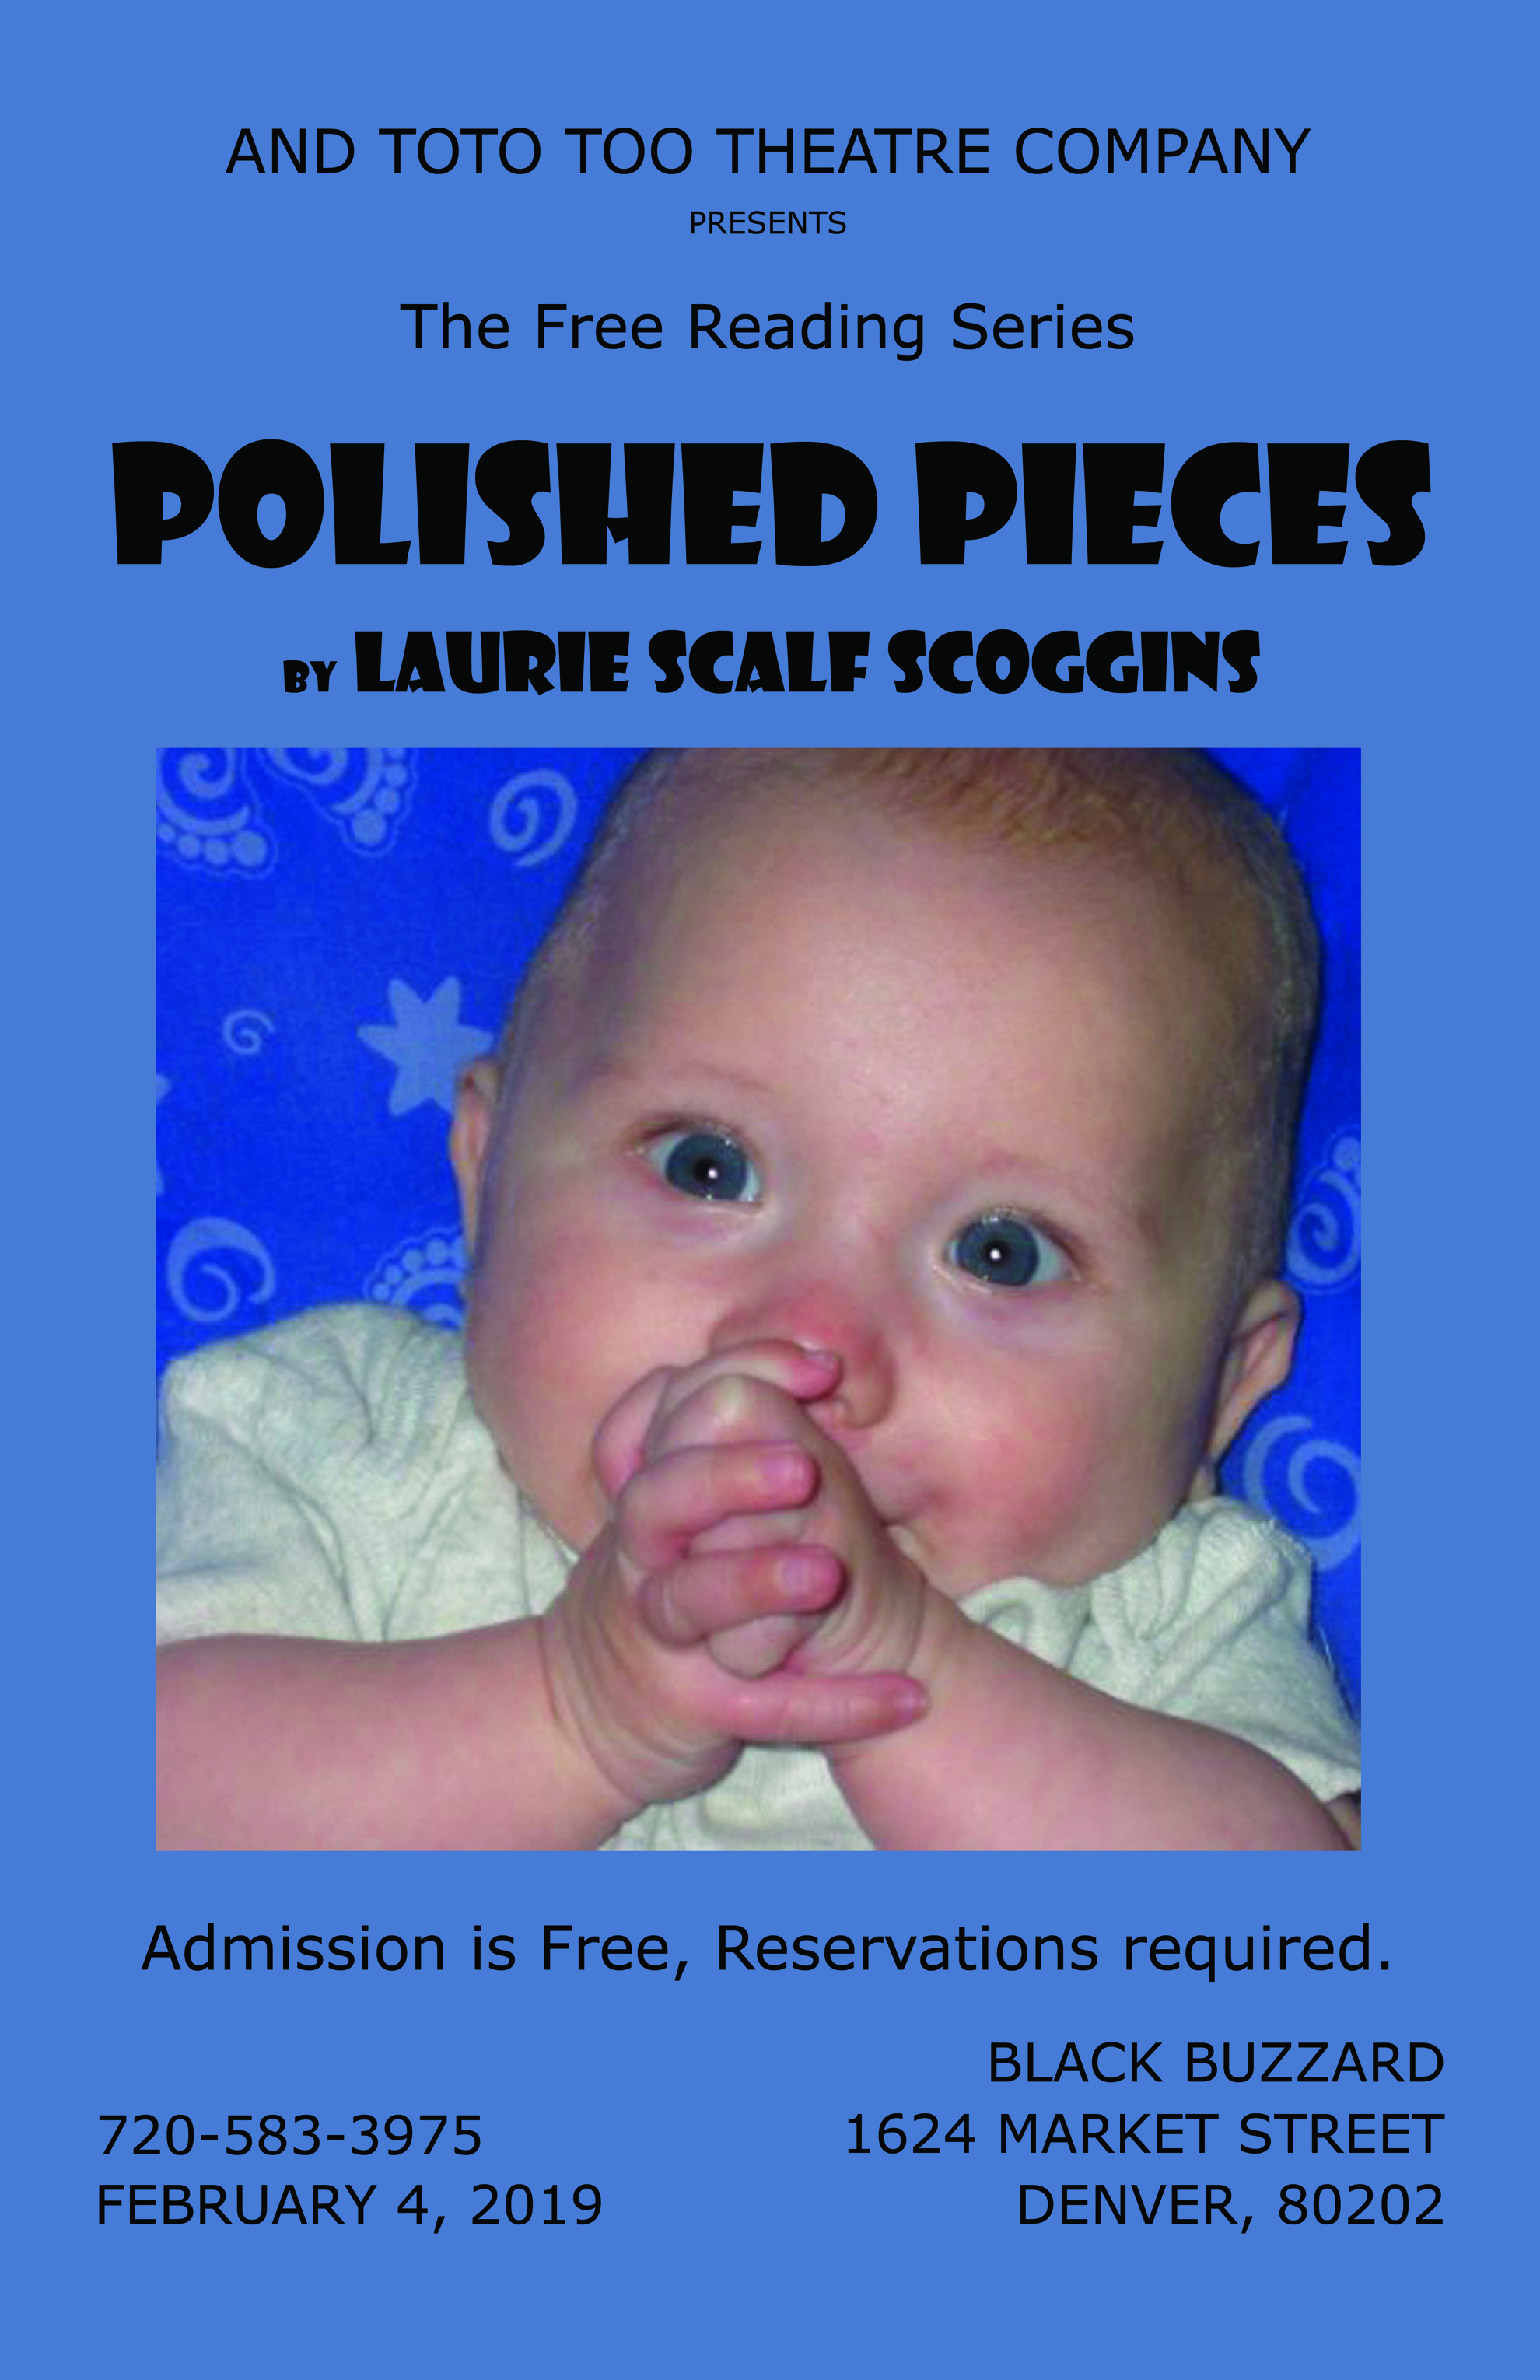 polished pieces poster 11x17-1.jpg